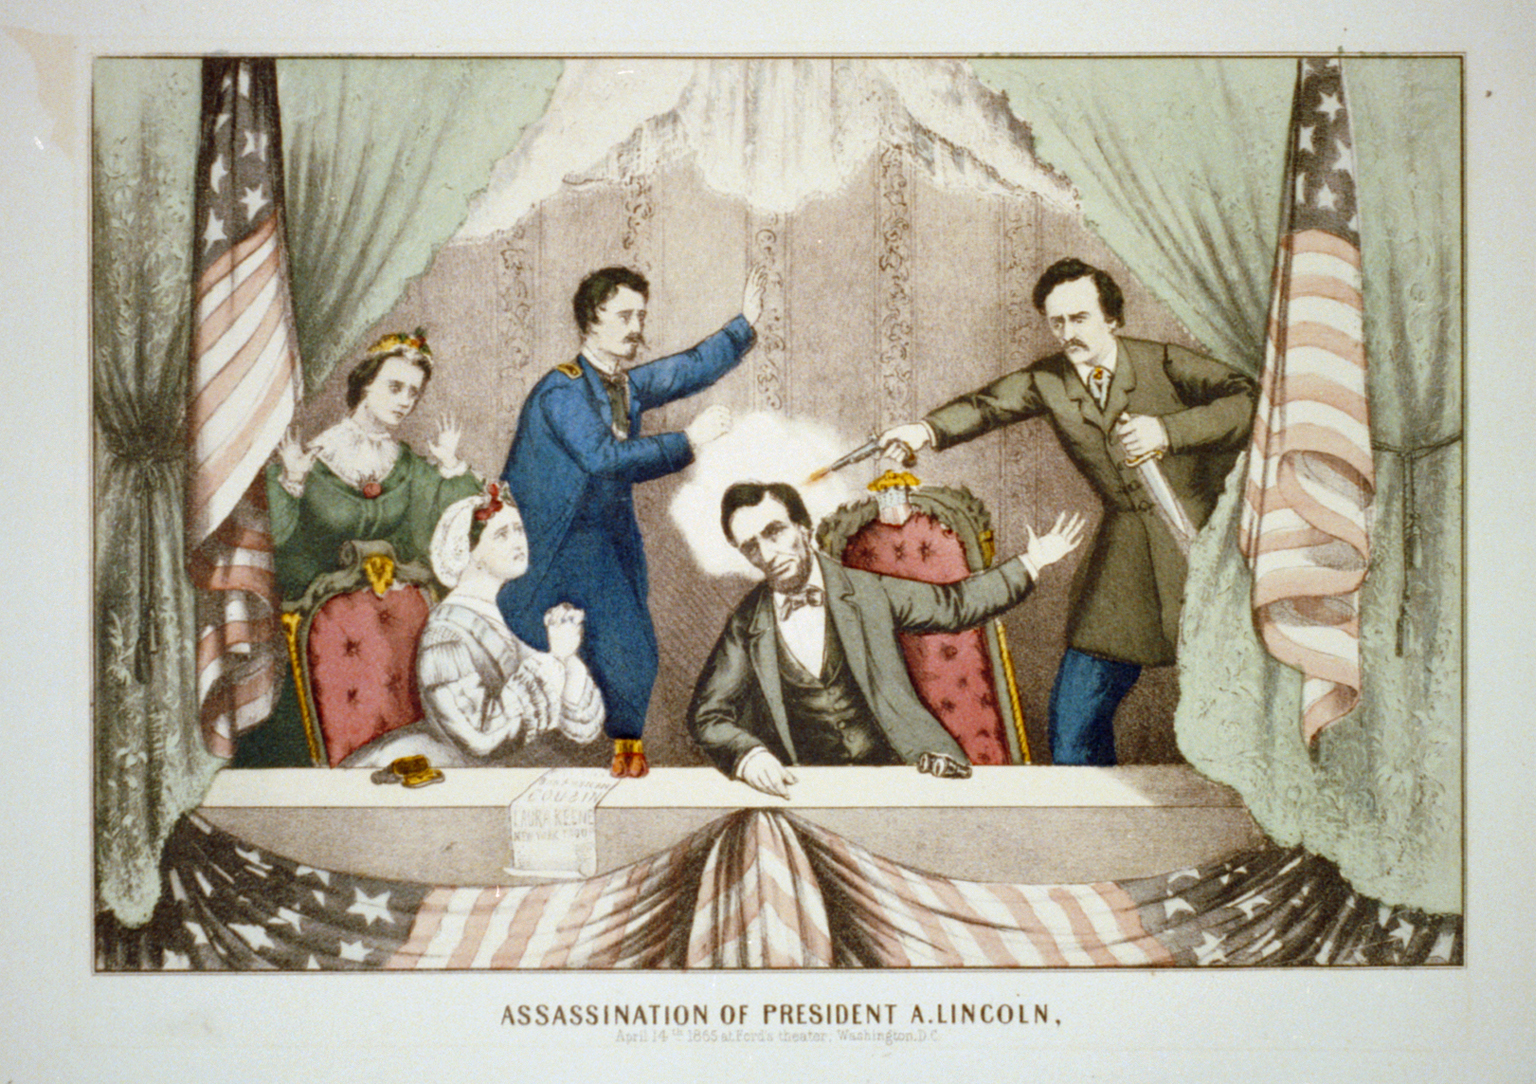 Print shows the president's box at Ford's Theater with John Wilkes Booth, on the right, shooting President Lincoln who is seated at the front of the box; on the left are Mary Todd Lincoln seated in the front, Major Henry Rathbone rising to stop Booth, and Clara Harris standing behind Mrs. Lincoln.